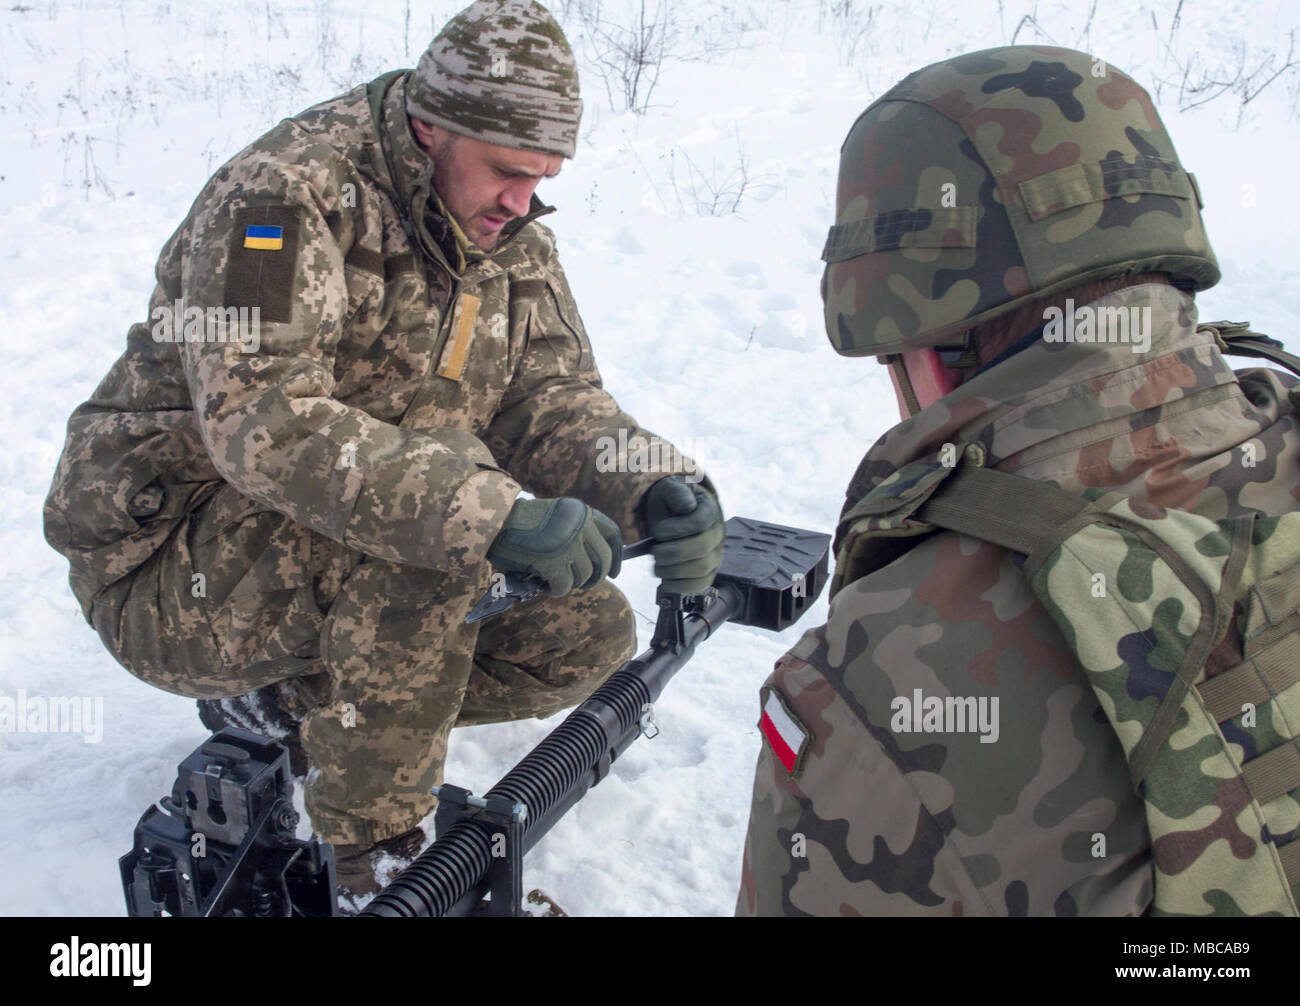 Yavoriv, Ukraine -- Ukrainian Soldiers assigned to 3rd Battalion, 14th Mechanized Brigade operate a DshK machine gun at the Yavoriv Combat Training Center (CTC) here Feb. 16. Currently the 3-14th is completing a training rotation at the CTC where they will be mentored by U.S., Canadian, Lithuanian, Polish, and U.K service members as they strive toward attaining their goal of achieving NATO interoperability. (U.S. Army Stock Photo